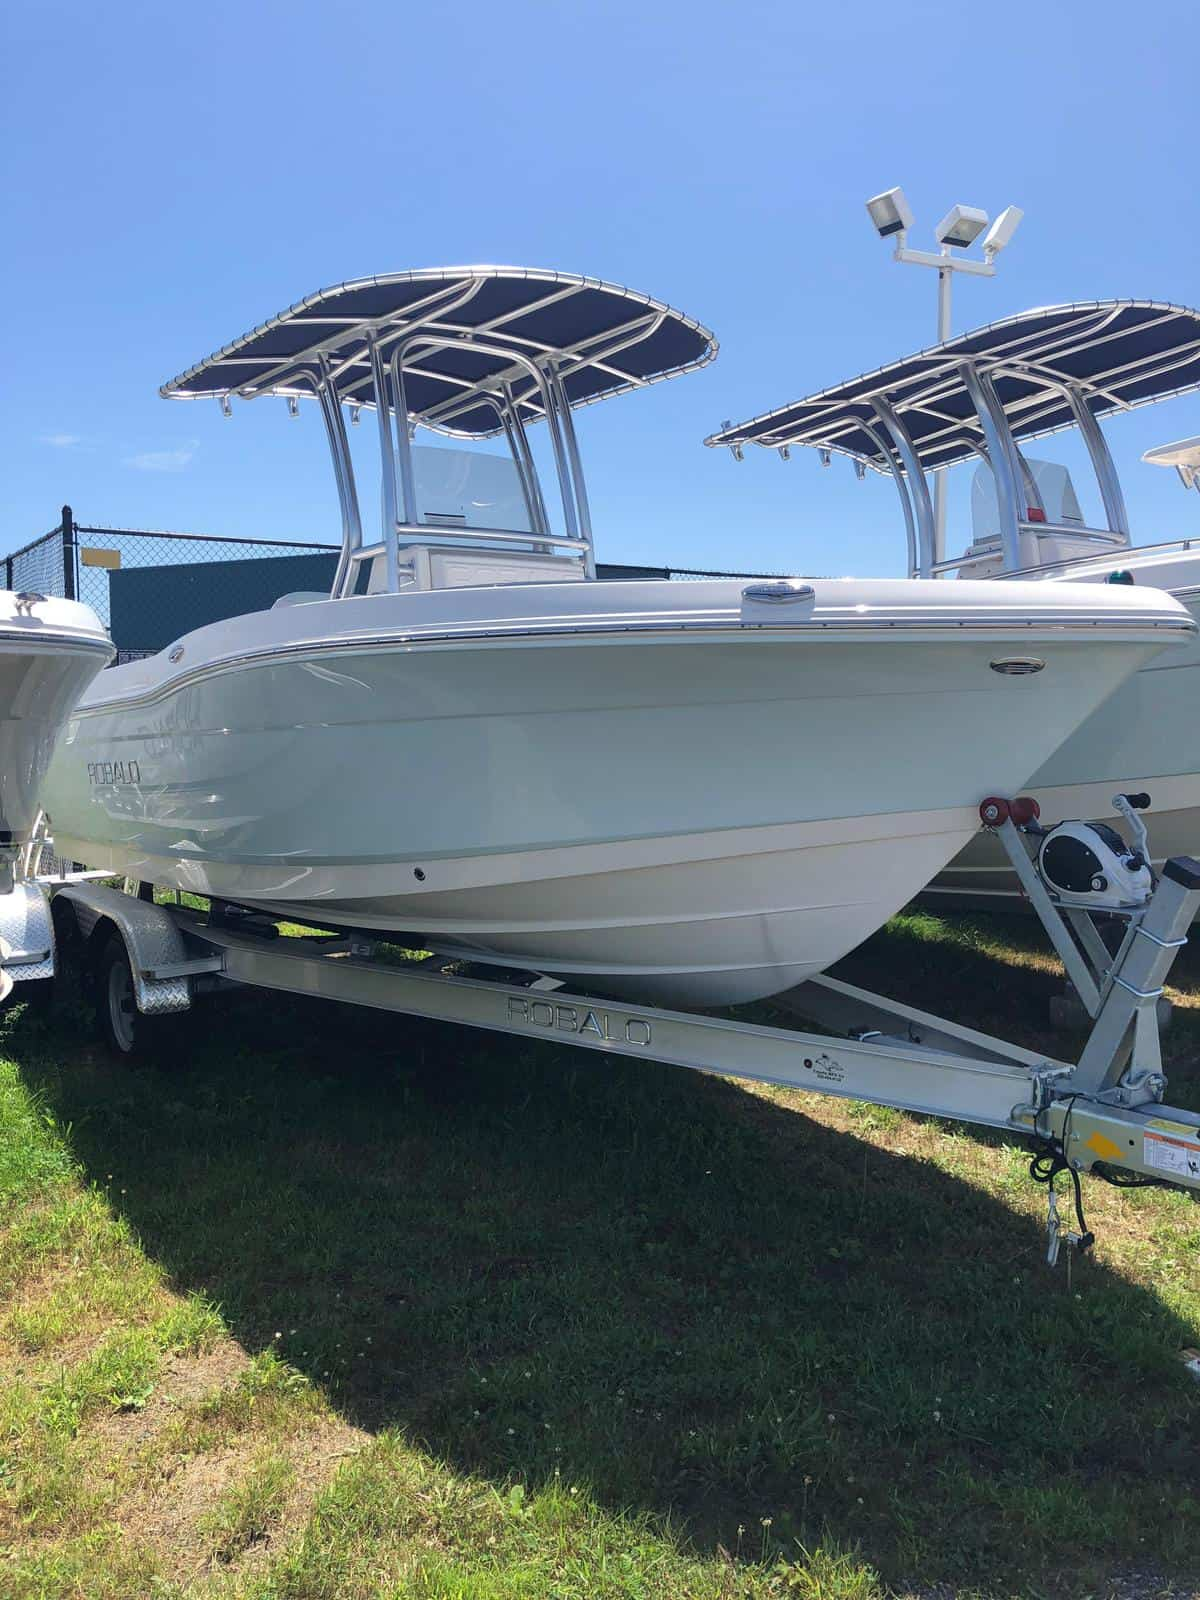 NEW 2018 Robalo R200 - Great Bay Marine